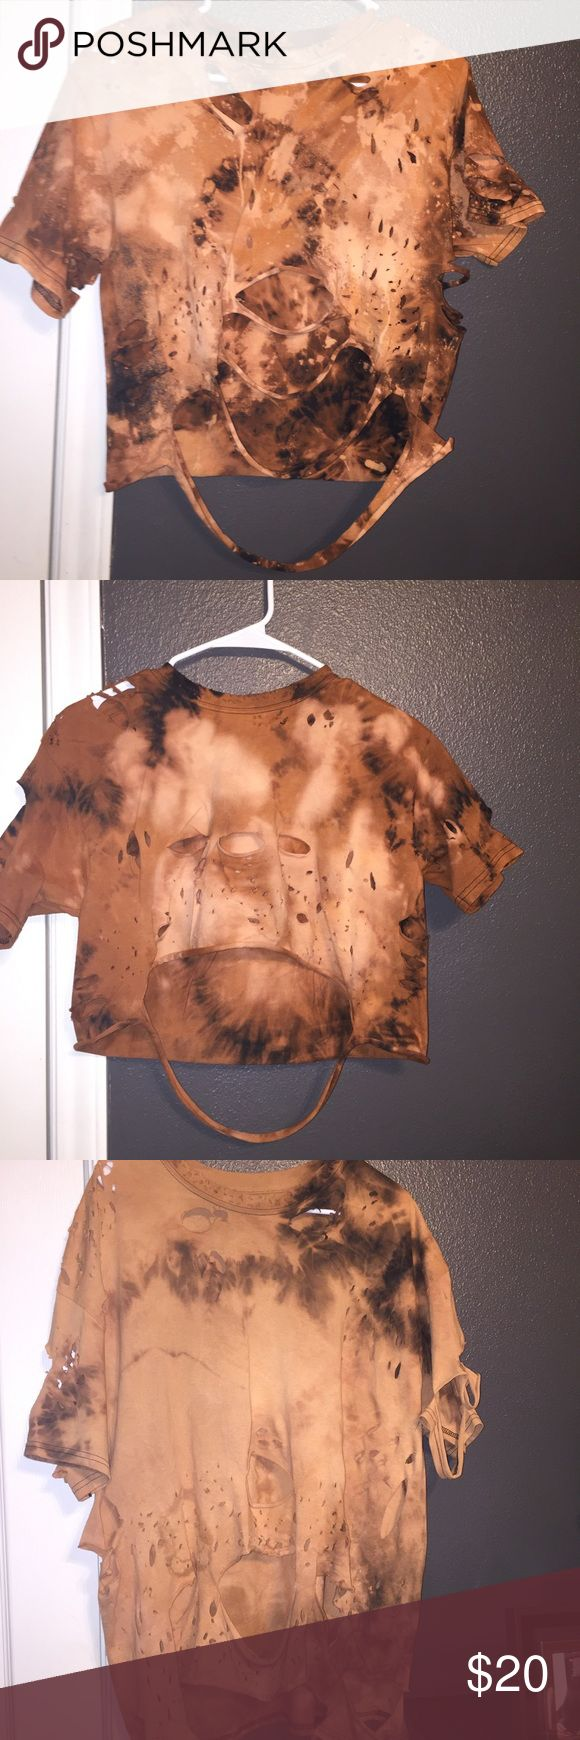 26 best DIY images on Pinterest | Diy clothes, Clothes and Diy shirt